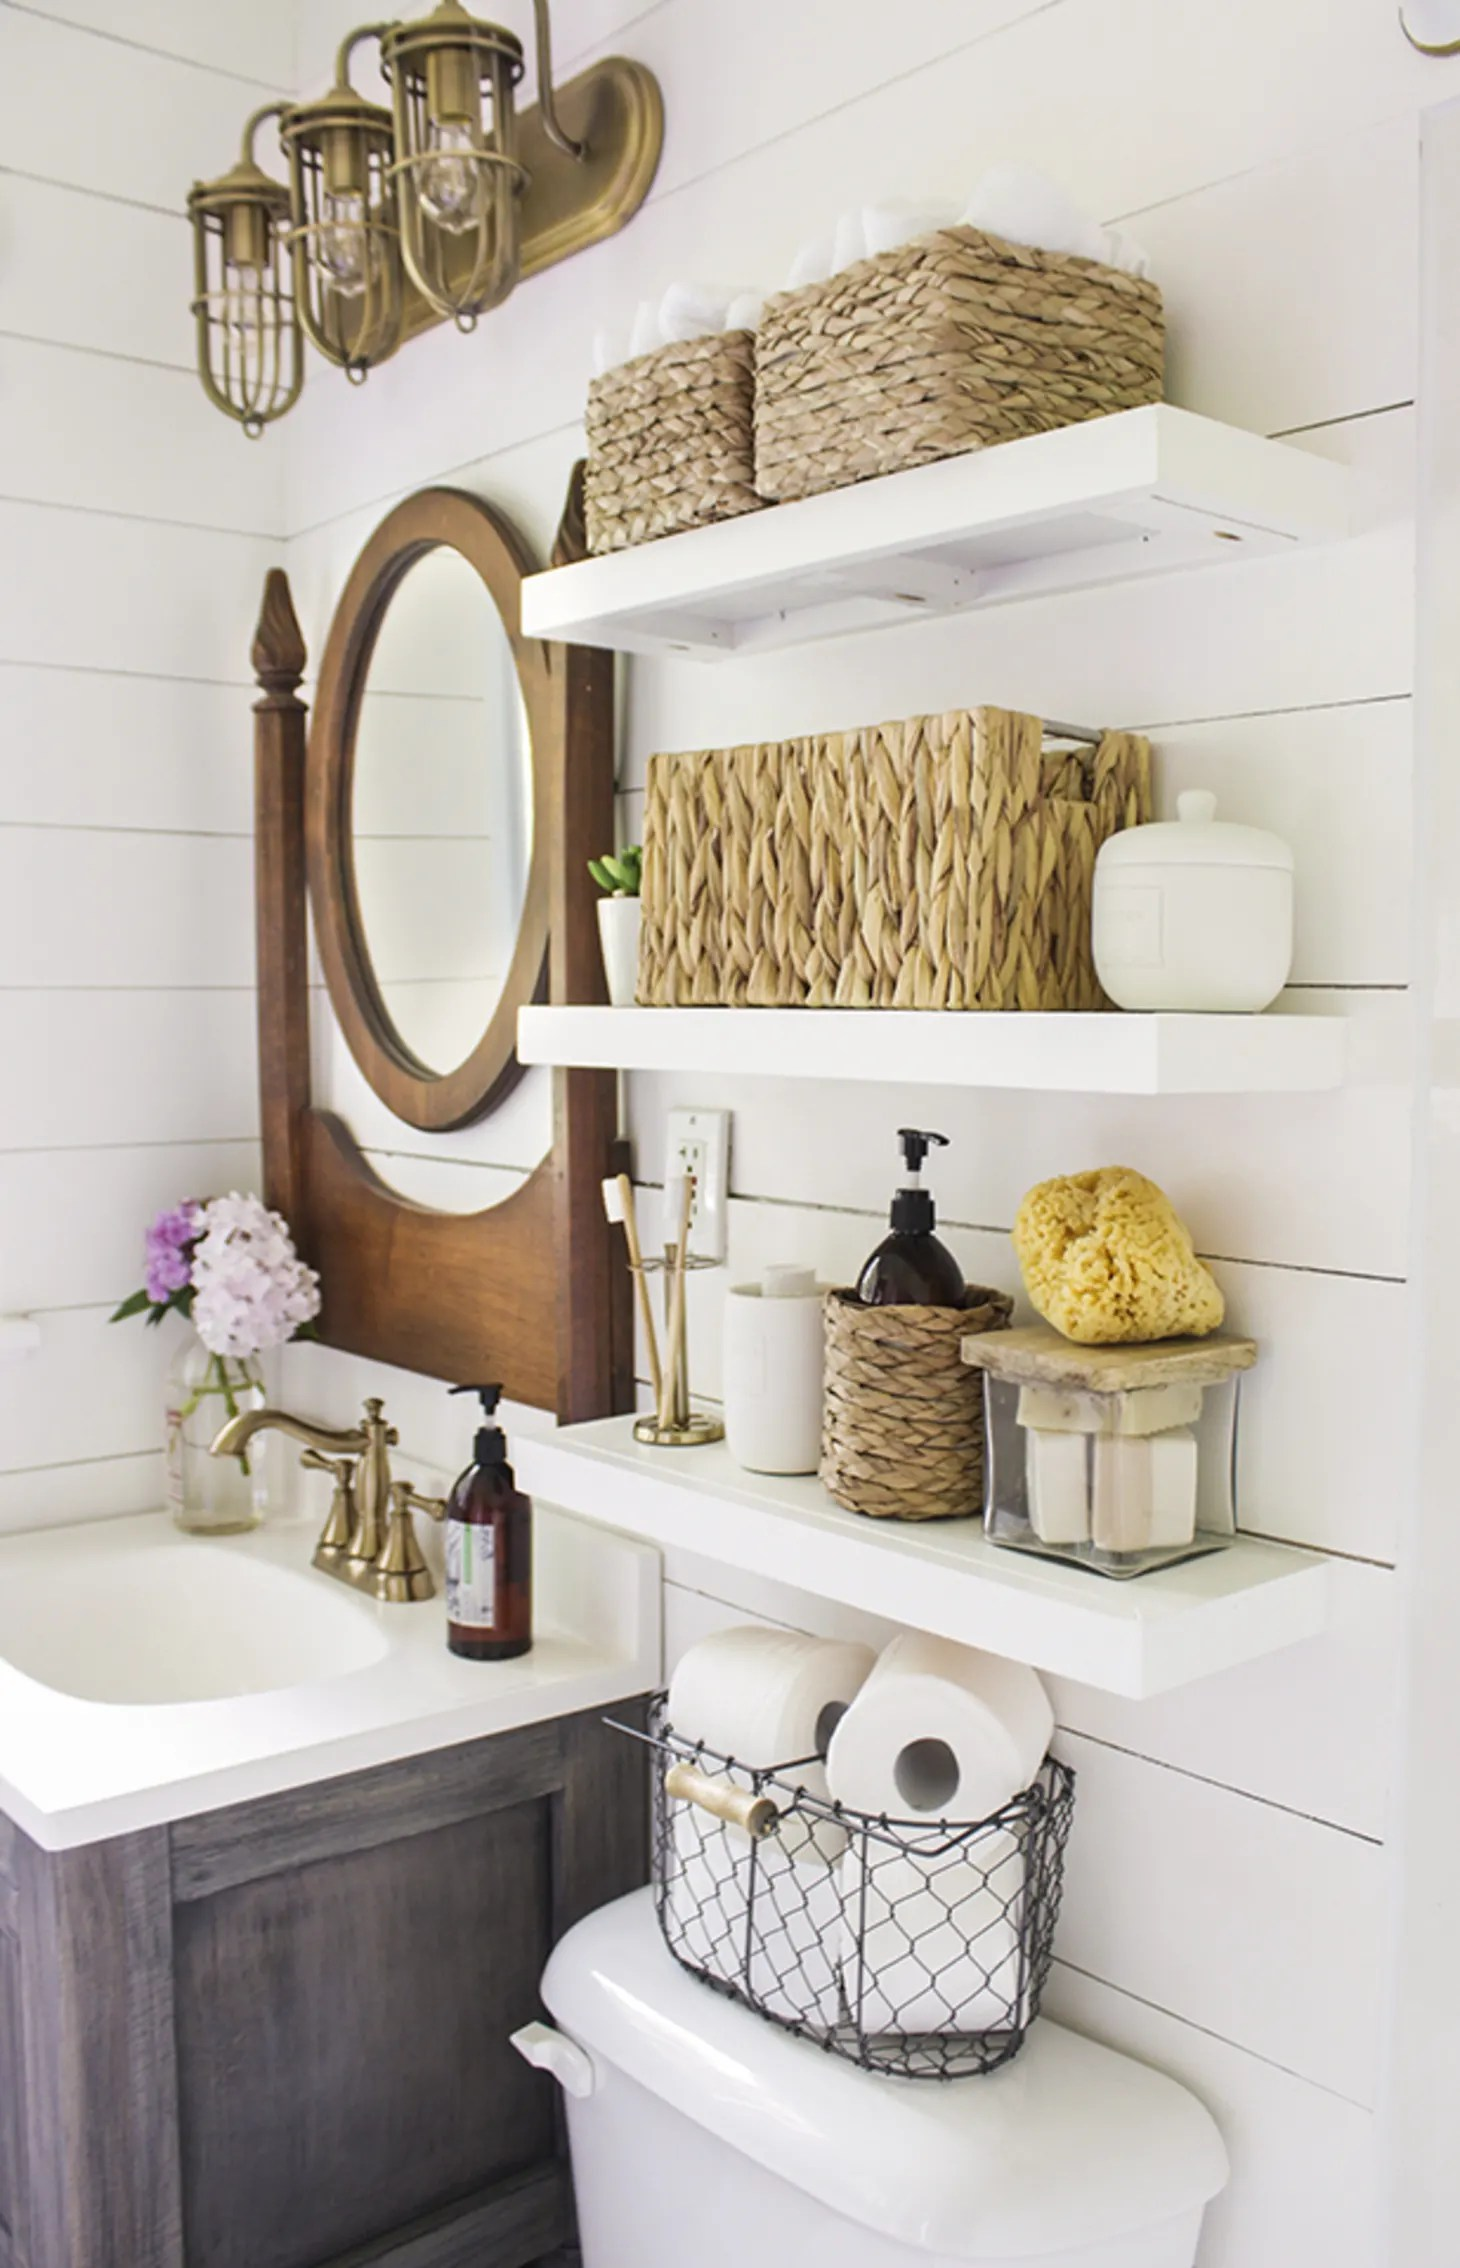 Toilet Paper Storage Ideas for a Small Bathroom ... on Small Apartment Bathroom Storage Ideas  id=62704